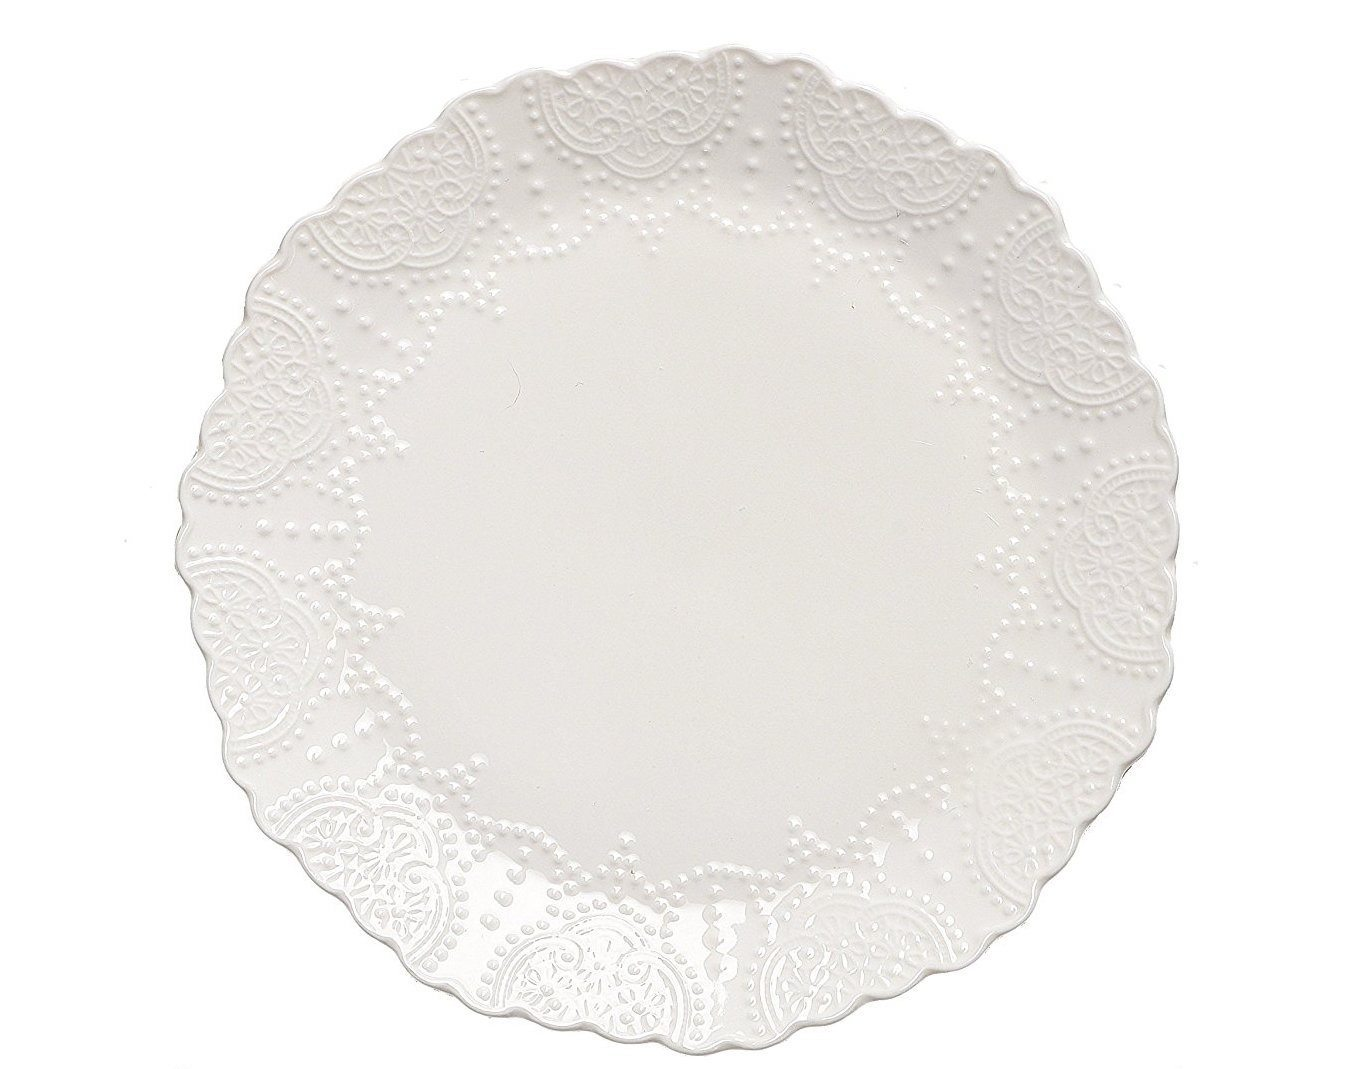 Thanksgiving Tablescape | Entertaining In Your Apartment | Scalloped Embossed White Dinner Plates